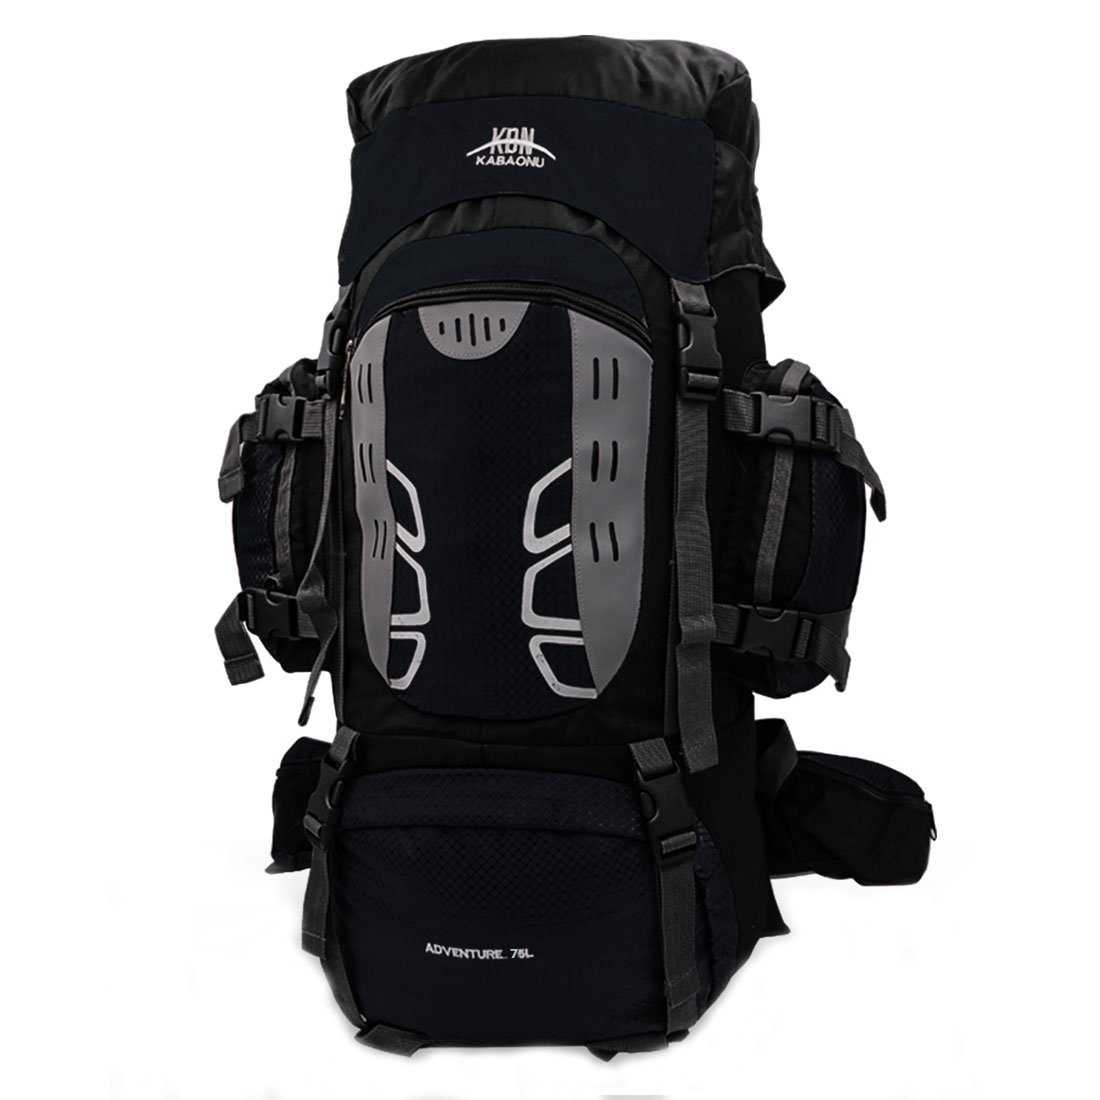 3f8d36800da8 Amazon.com   Mooedcoe 75L Internal Frame Hiking Backpack for Outdoor  Camping Travel Backpacking Backpack for Men (Black)   Sports   Outdoors